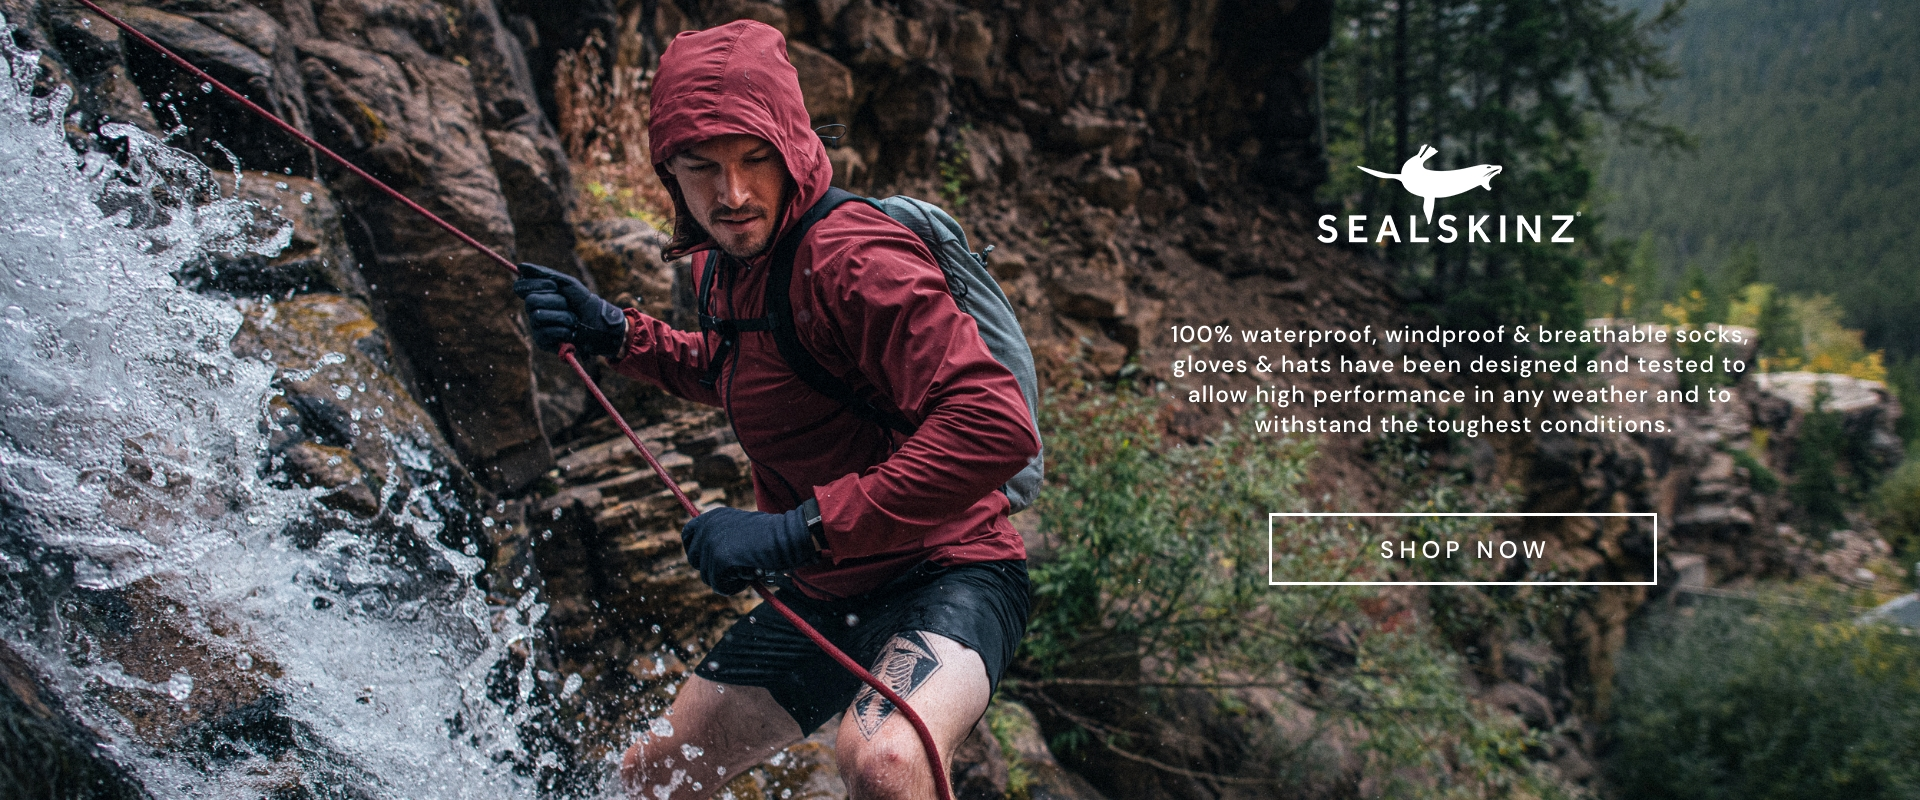 Sealskinz - Any activity, any weather - 100% waterproof, windproof & breathable socks, gloves & hats have been designed and tested to allow high performance in any weather and to withstand the toughest conditions. - Shop Now